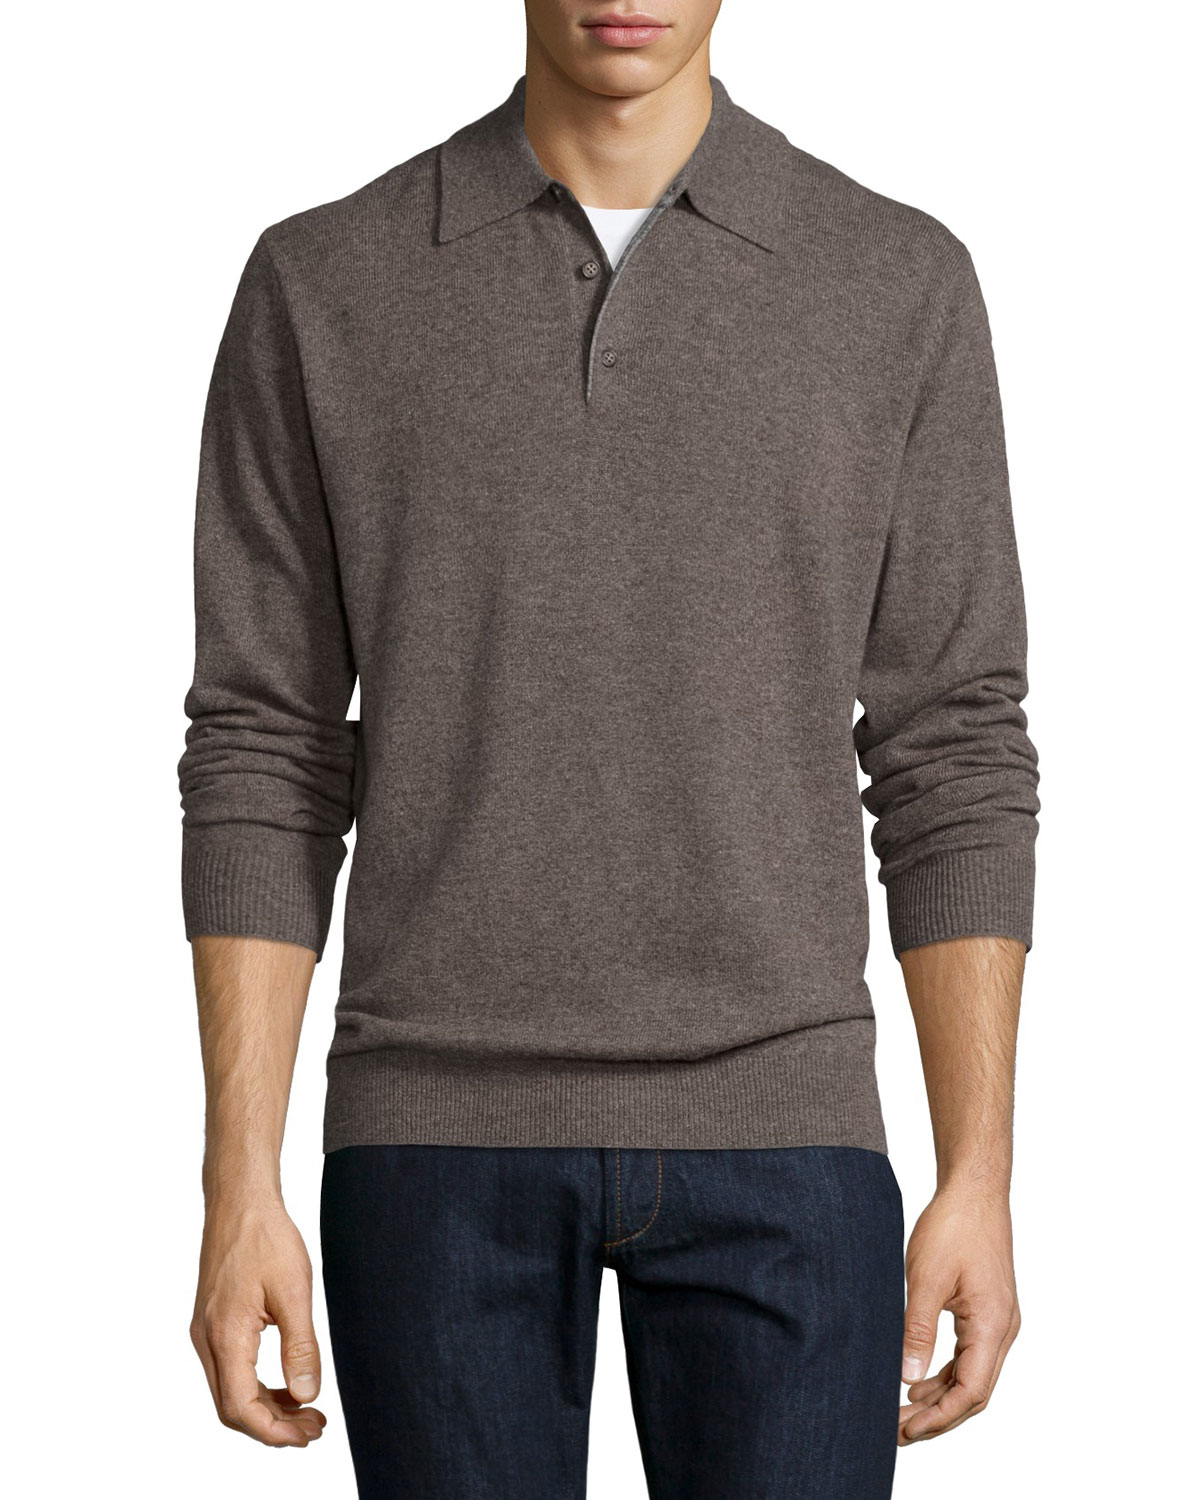 Free Shipping on many items across the worlds largest range of Neiman Marcus Clothing for Men. Find the perfect Christmas gift ideas with eBay.